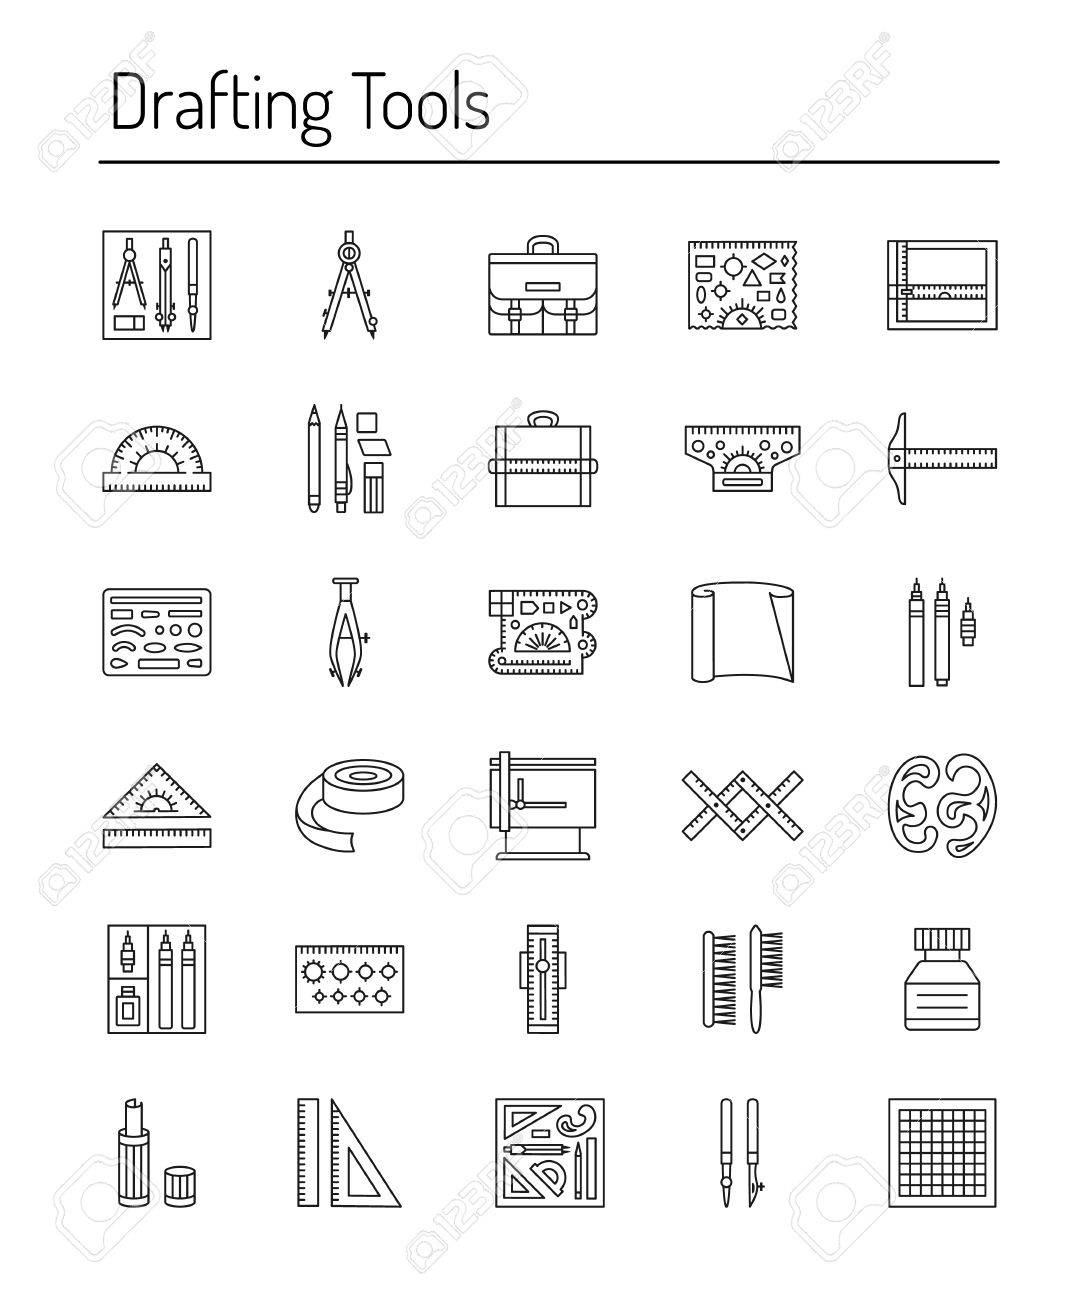 drawing tools computer drafting tools icon collection engineering drawing line icons set kit ruler tools icon collection drawing icons